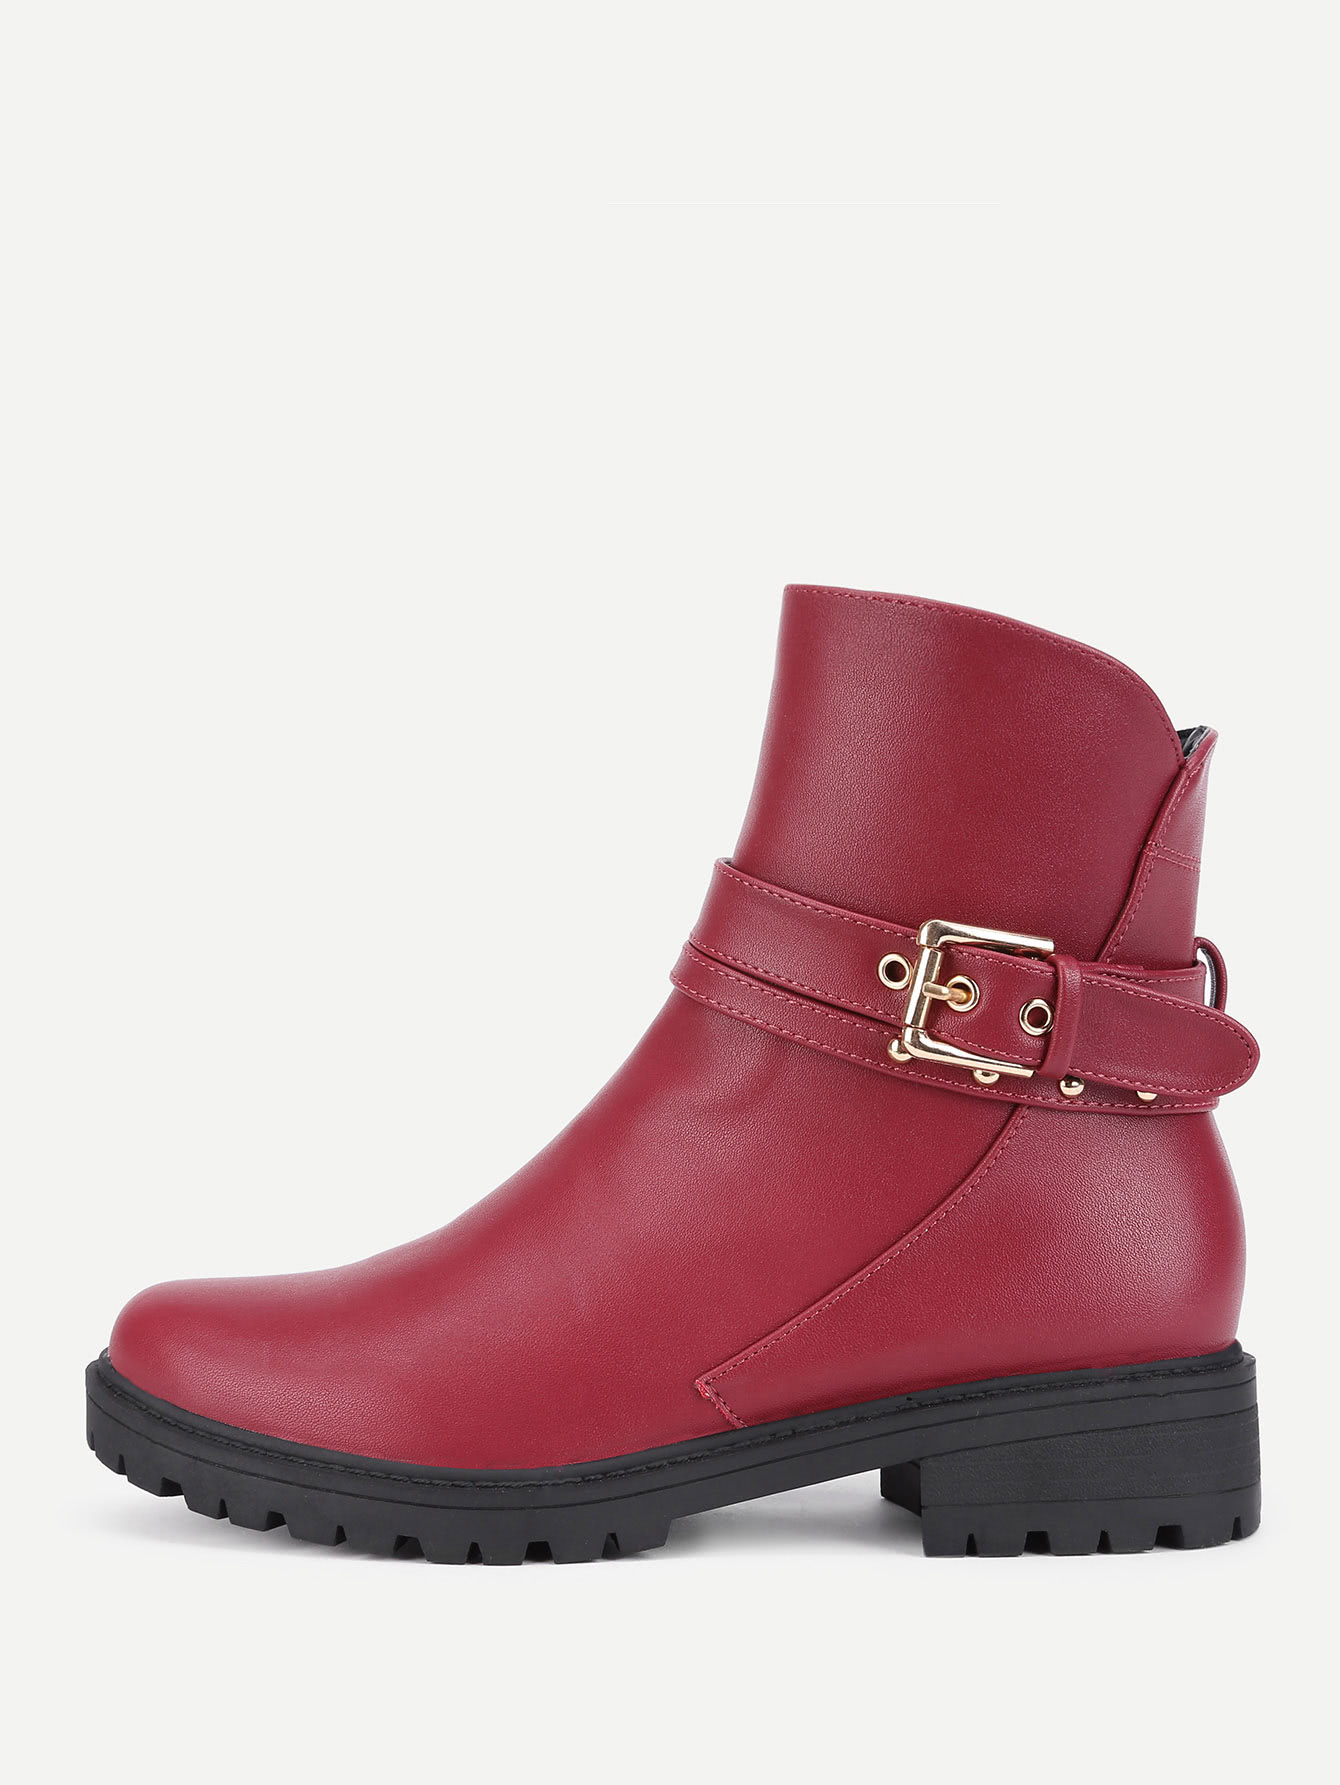 Buckle Decorated Round Toe Boots yanicuding round toe rivets embellished women boots buckle shoes luxury brand stylish european style short booties runway star